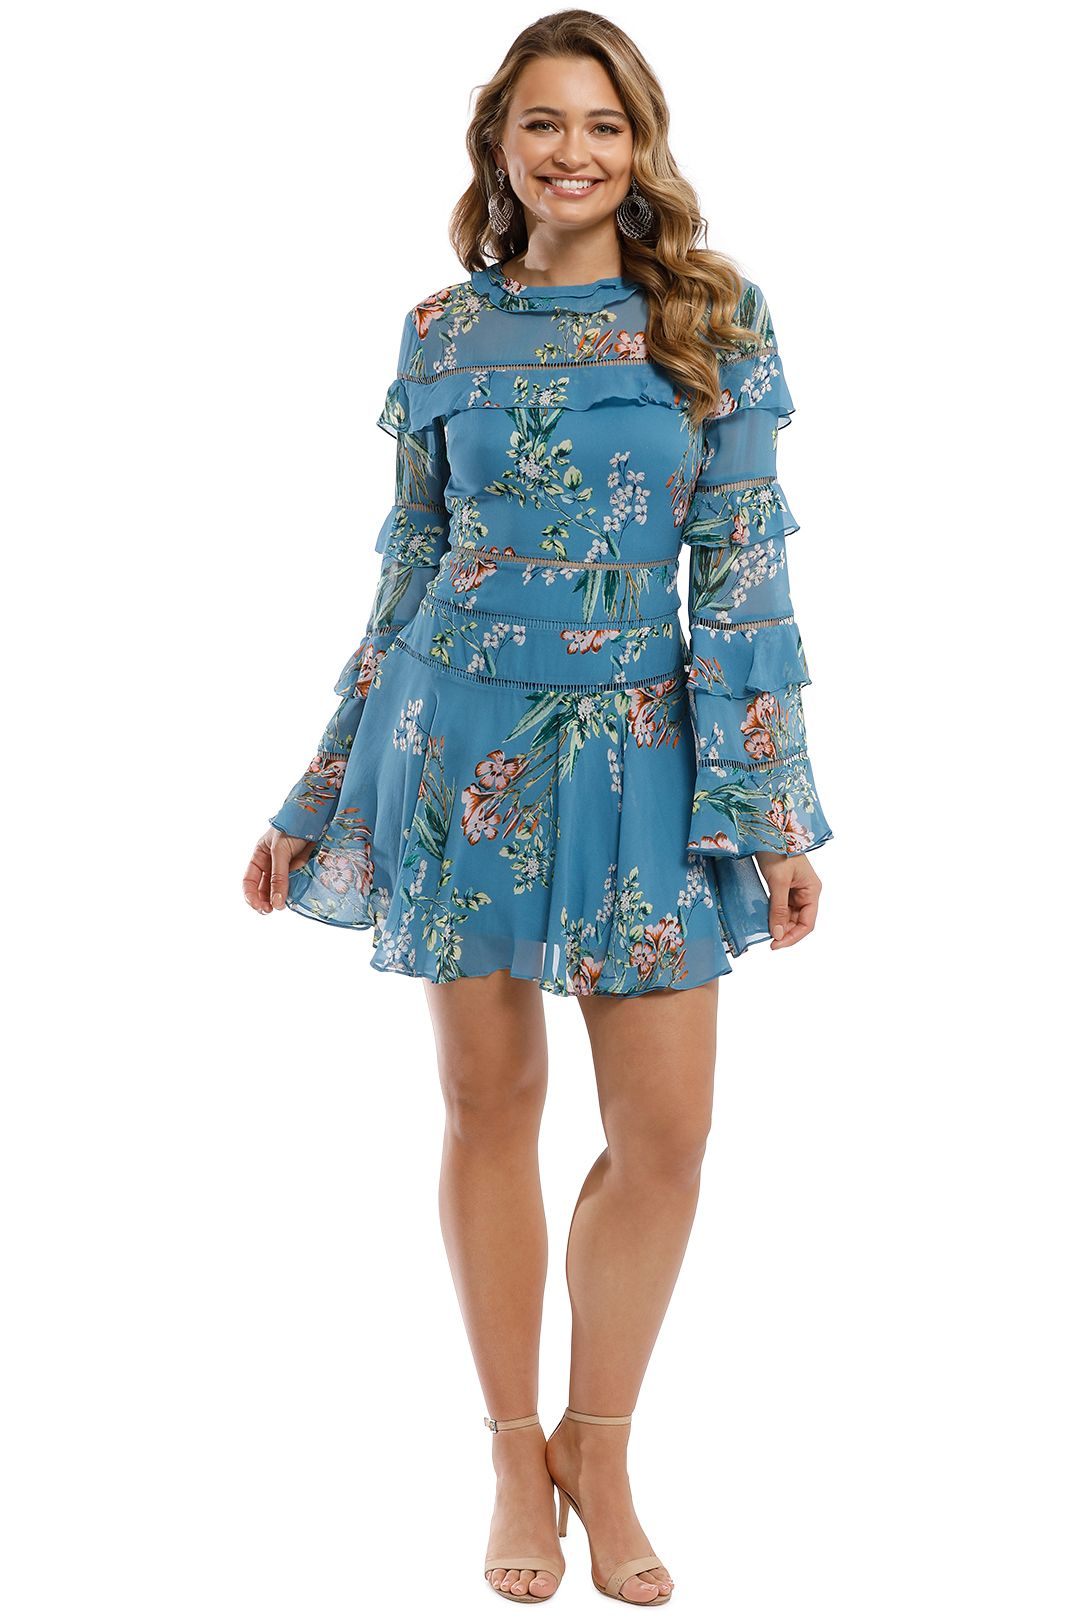 Nicholas - Delphine Ruffle Mini Dress - Blue Multi - Front